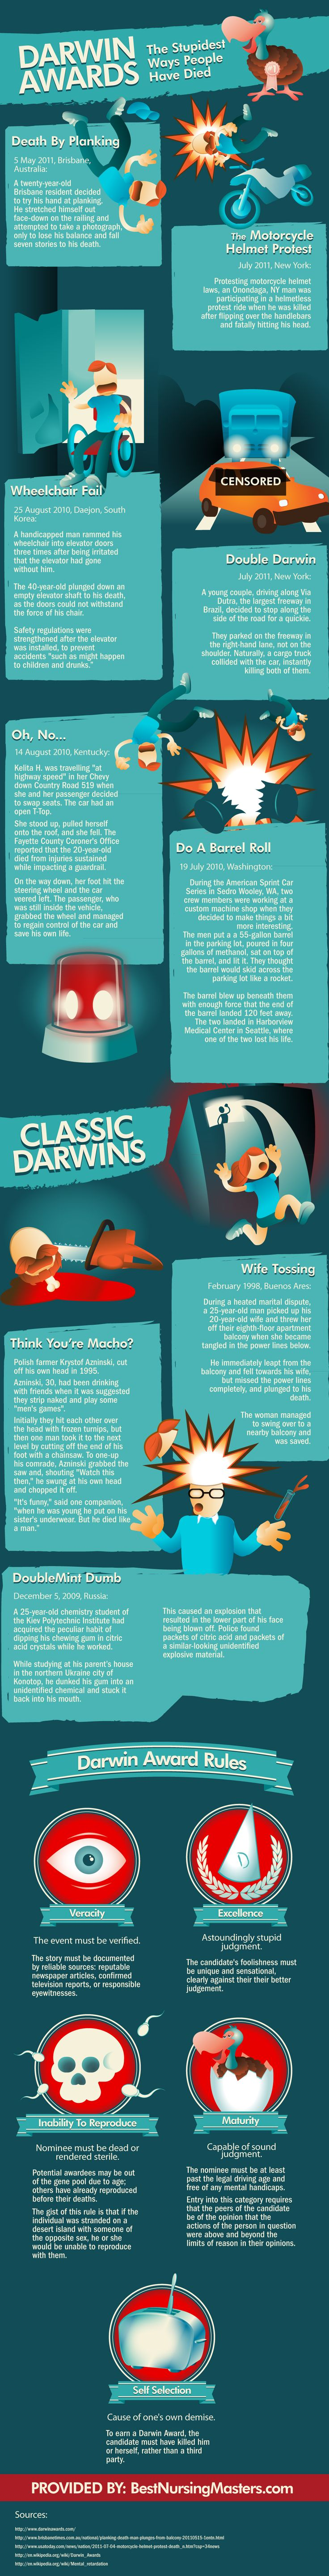 Darwin Awards: The Stupidest Ways People Have Died - Infographic  #DarwinAward